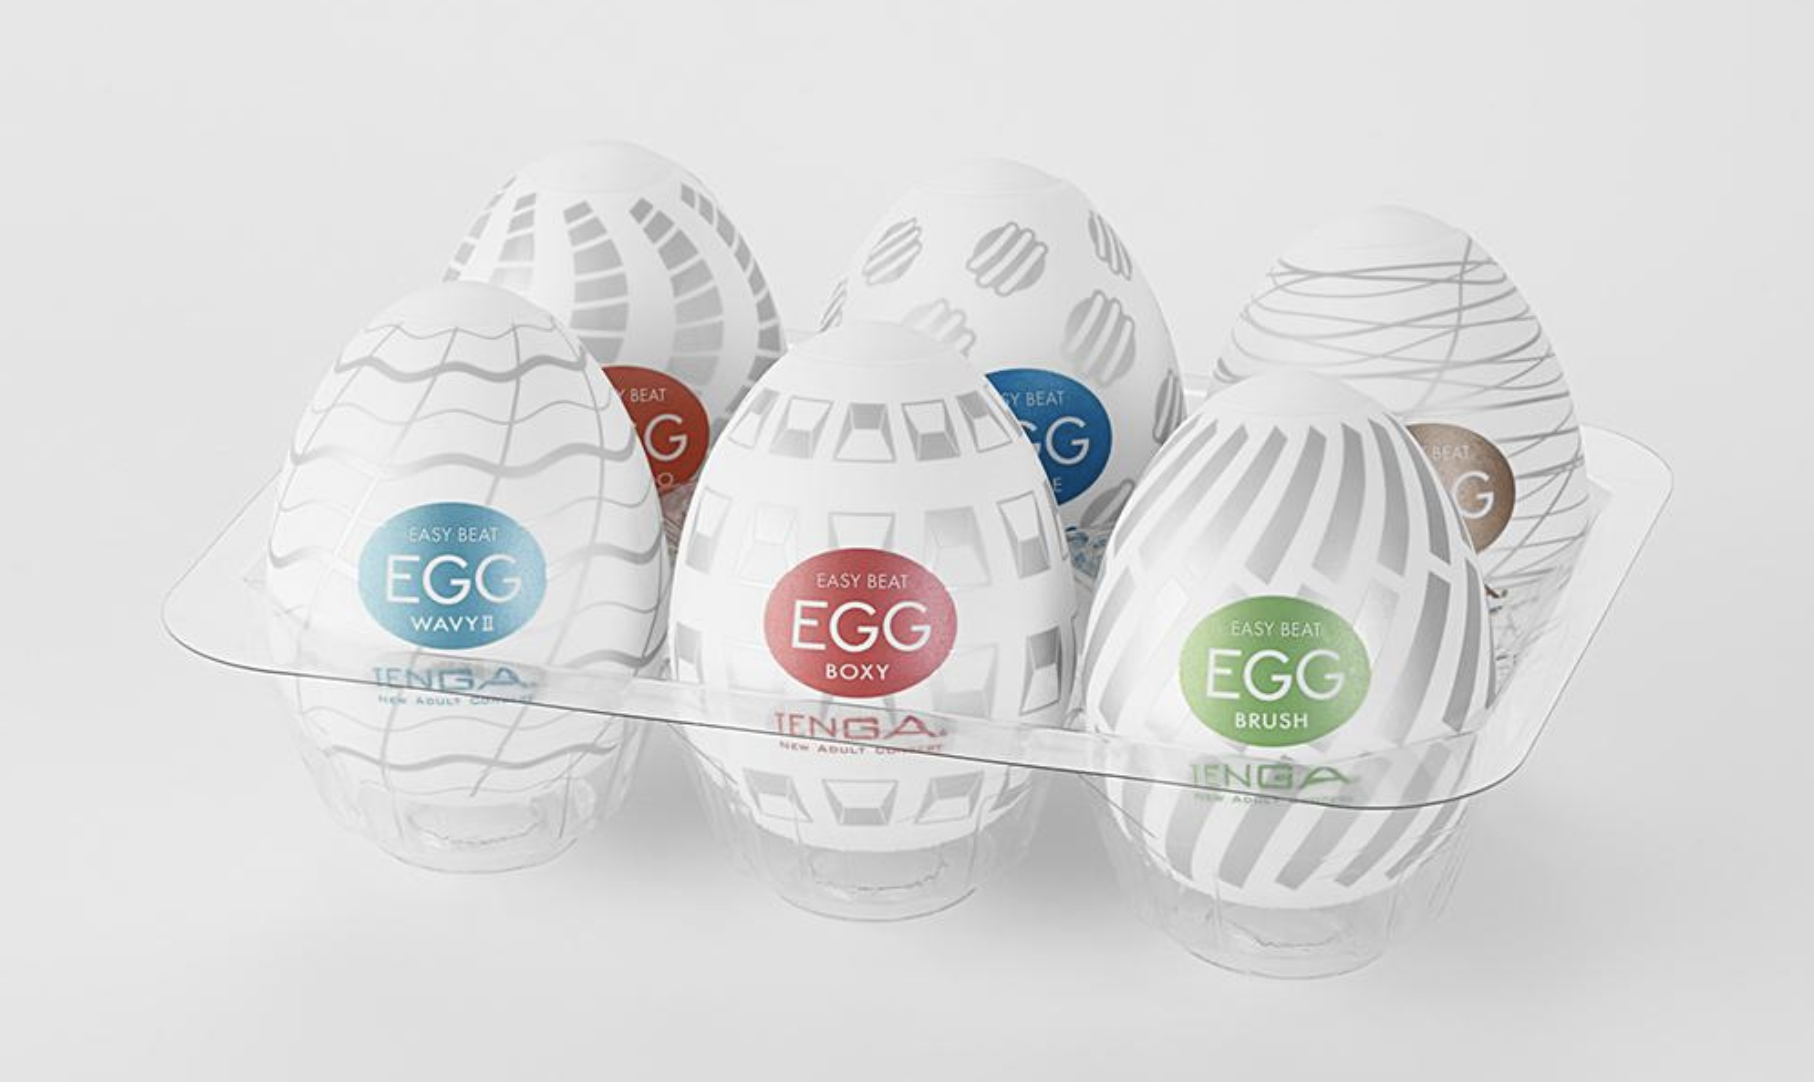 Tenga Egg Series - super stretchy, disposable masturbation sleeves